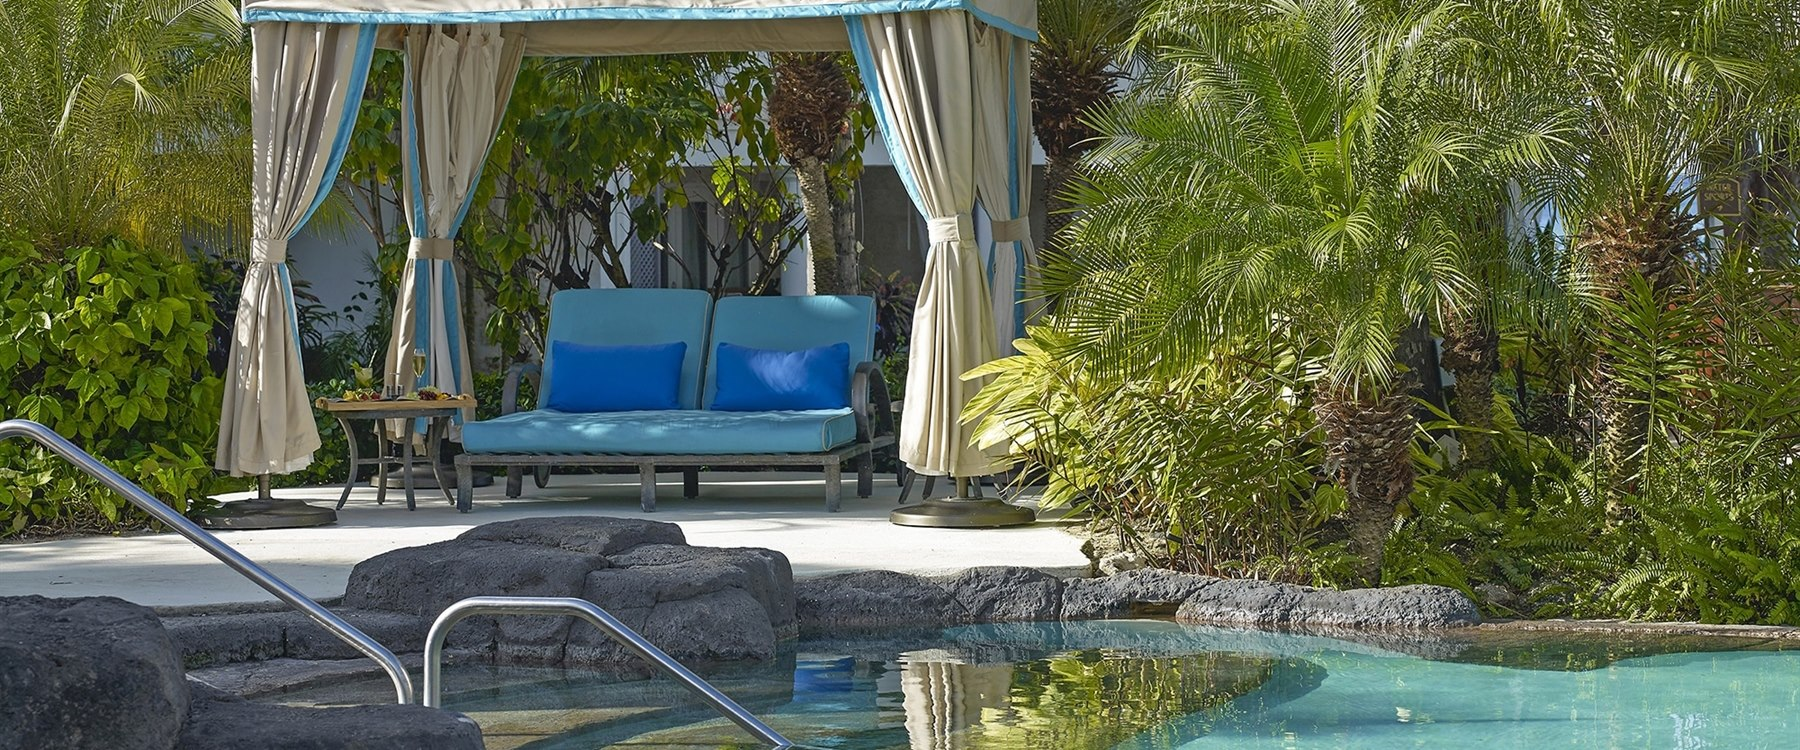 Poolside Cabana at Colony Club by Elegant Hotels